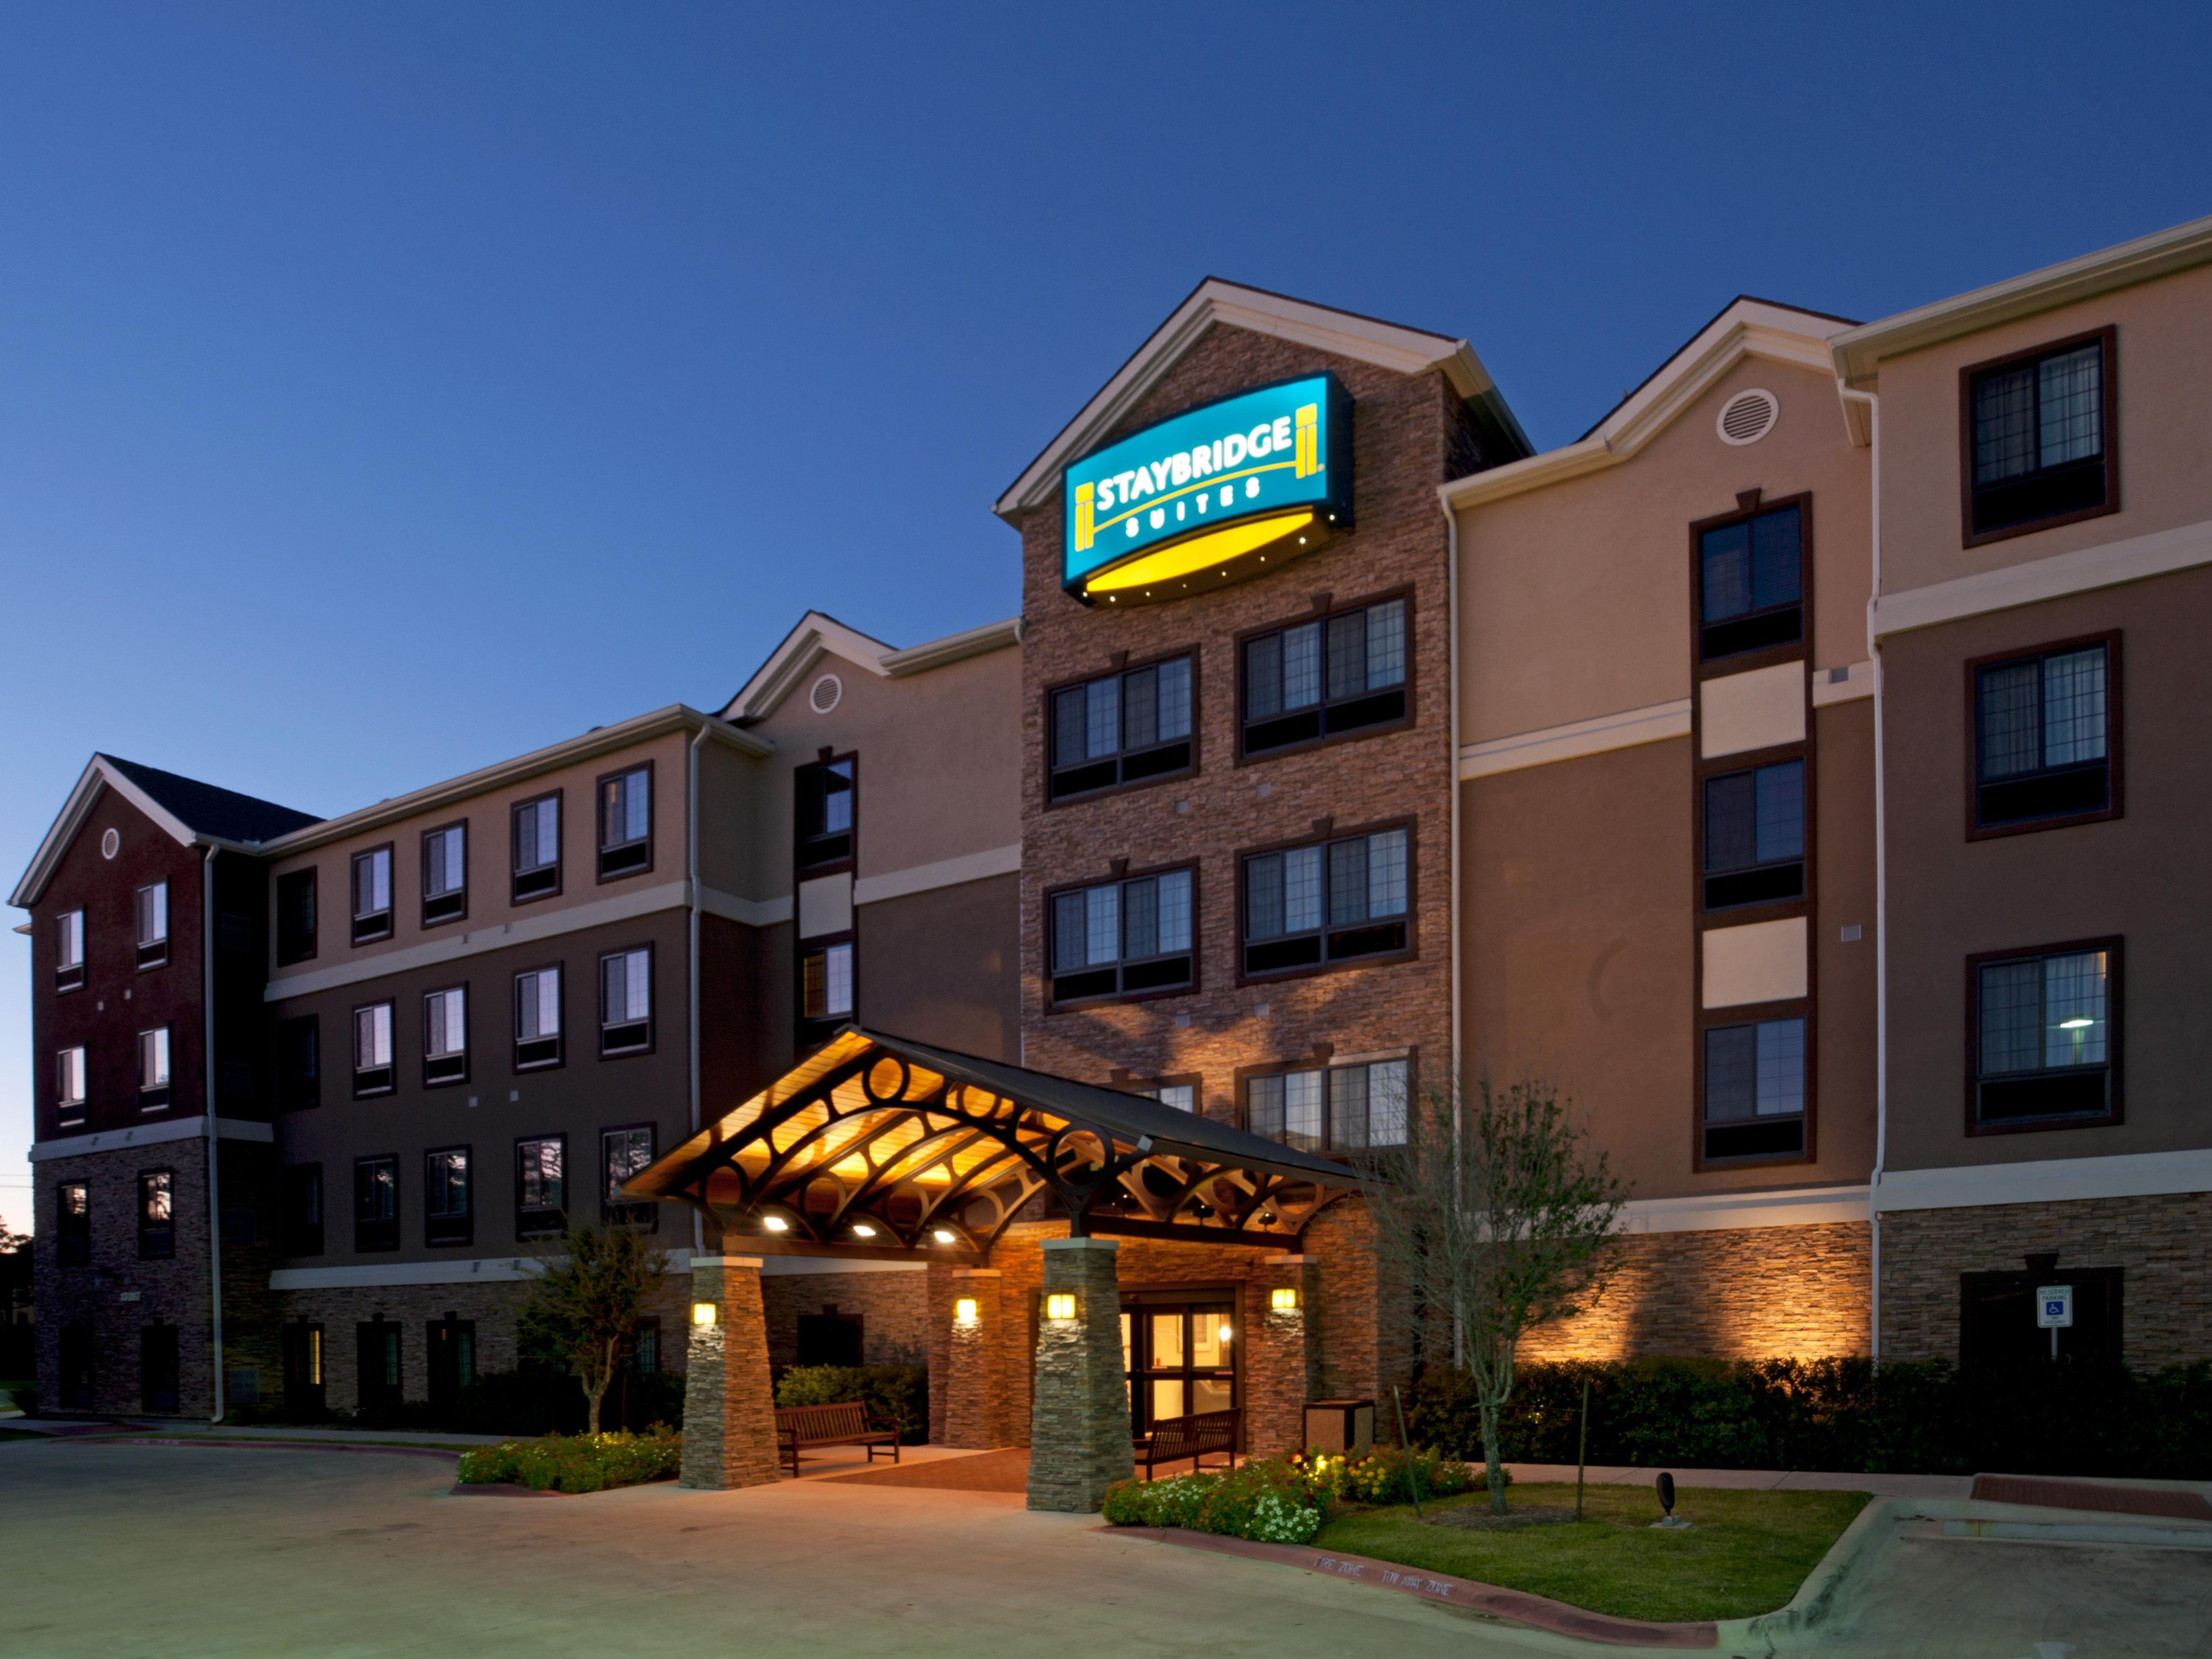 Austin Hotels Staybridge Suites Northwest Extended Stay Hotel In Texas